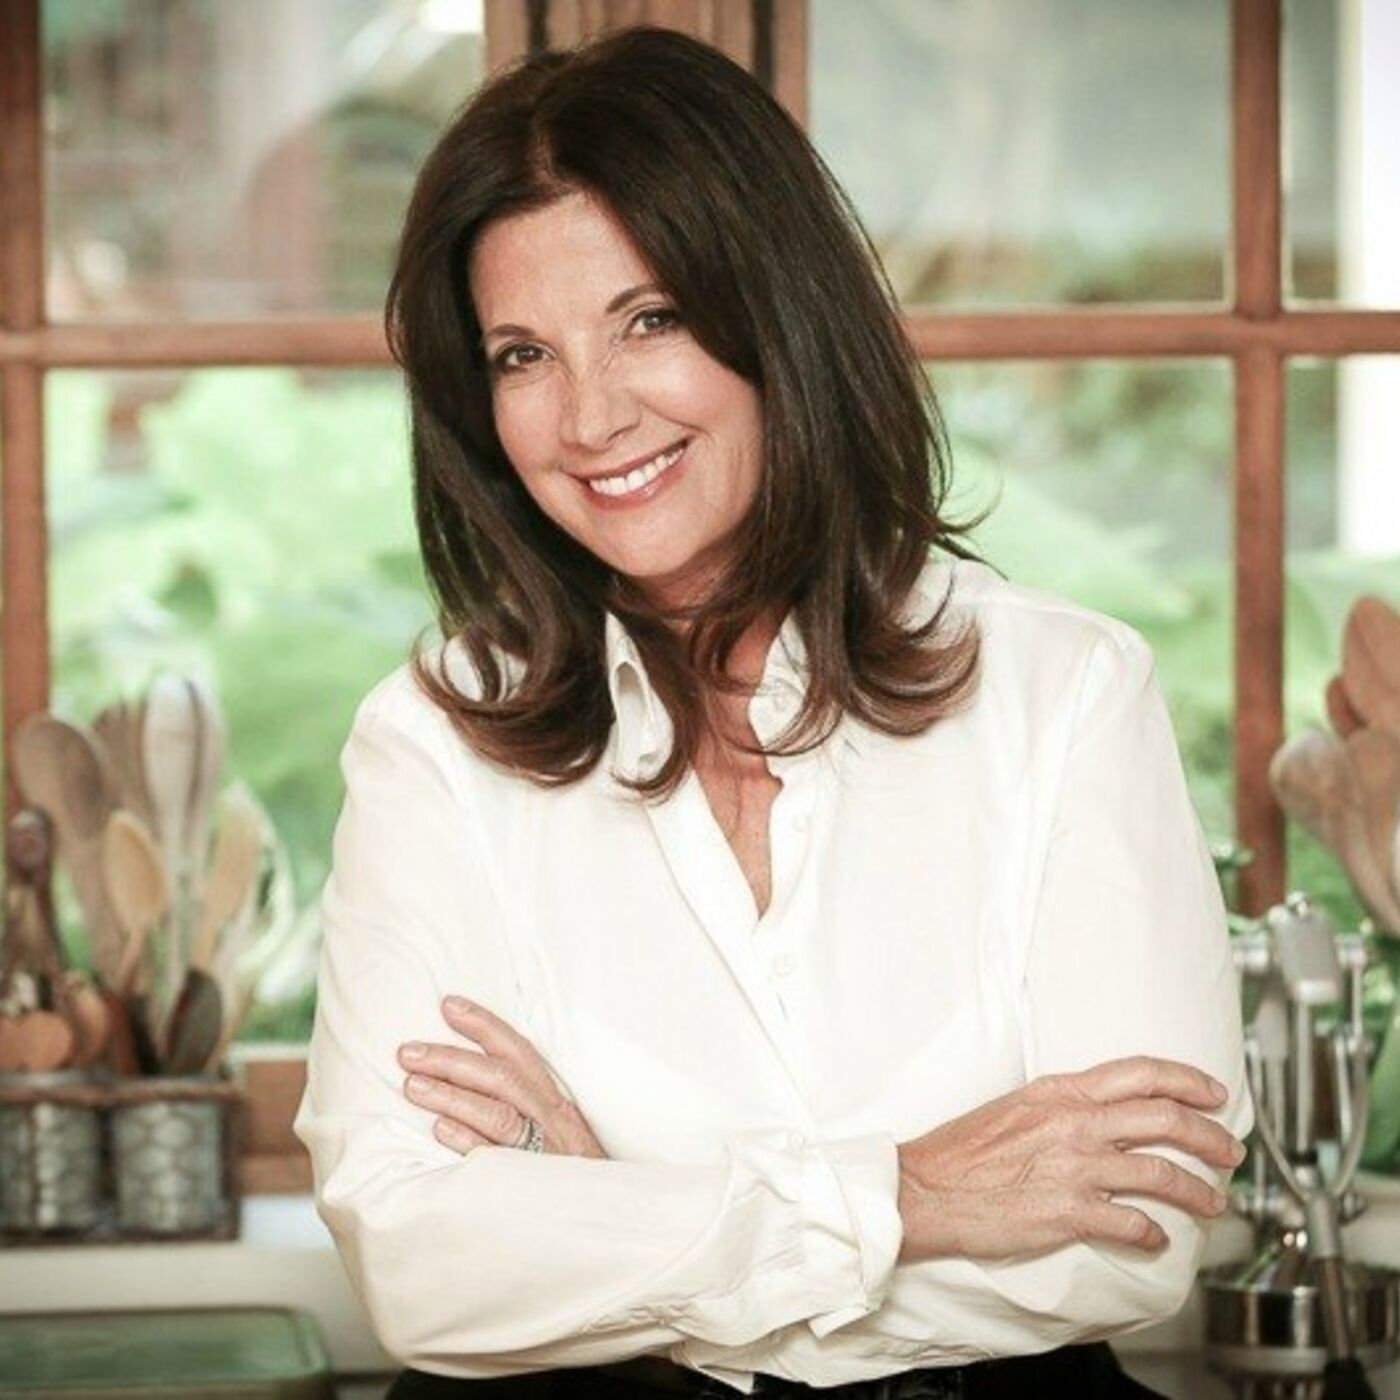 Annette Joseph Loves Italy And Invites You To Visit